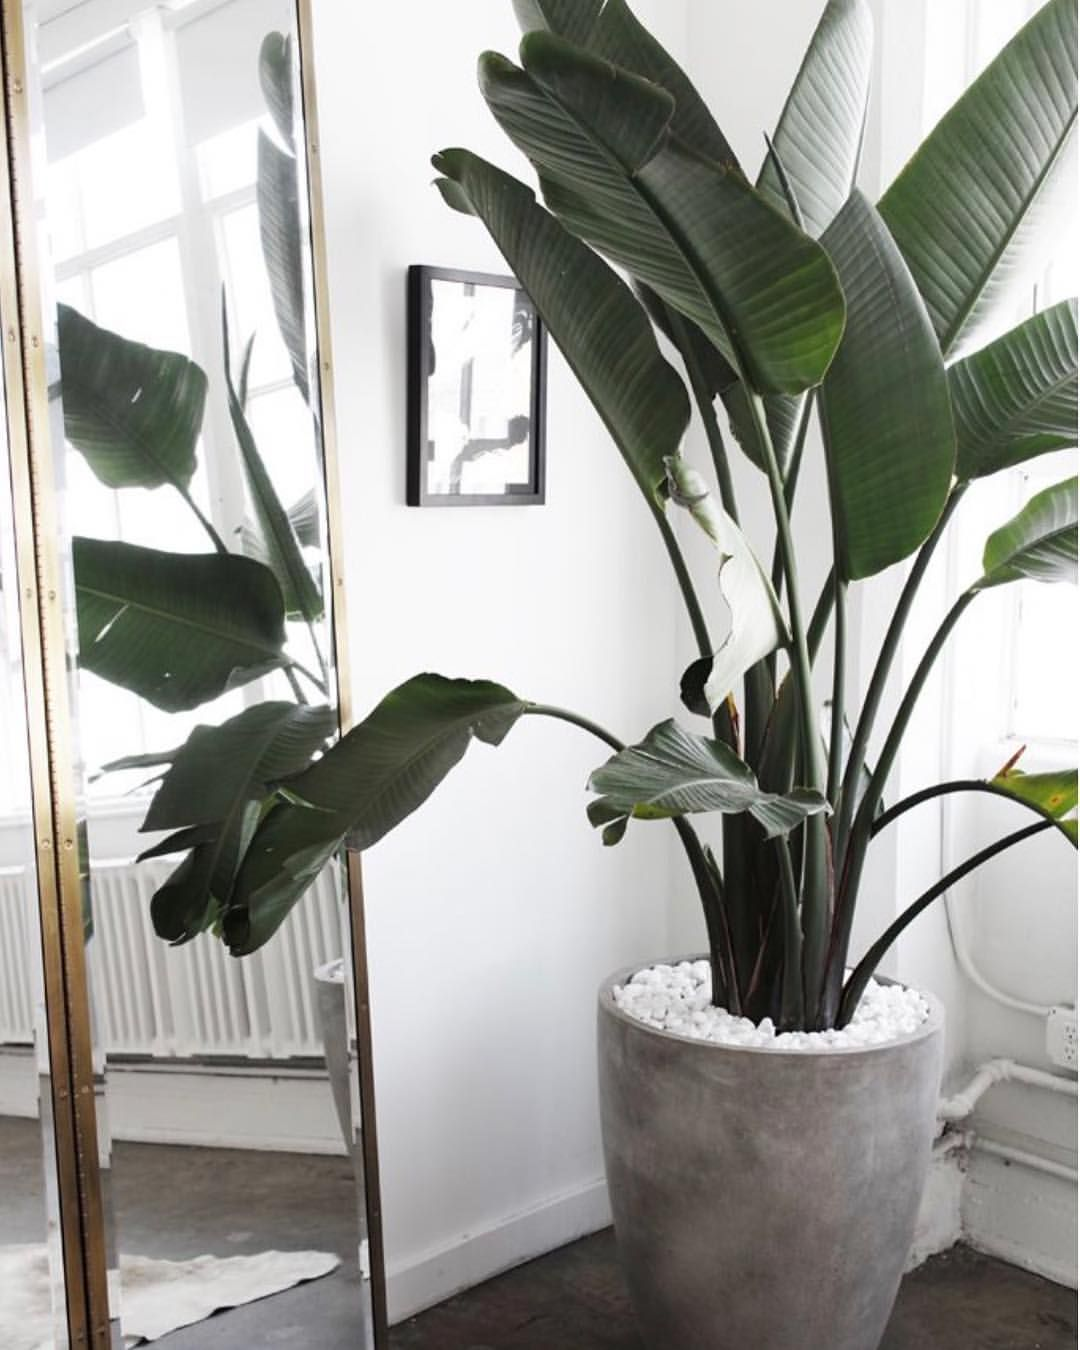 Big Plants For Living Room Pin By Alicia Knights On Indoor Plants Pinterest 집 집